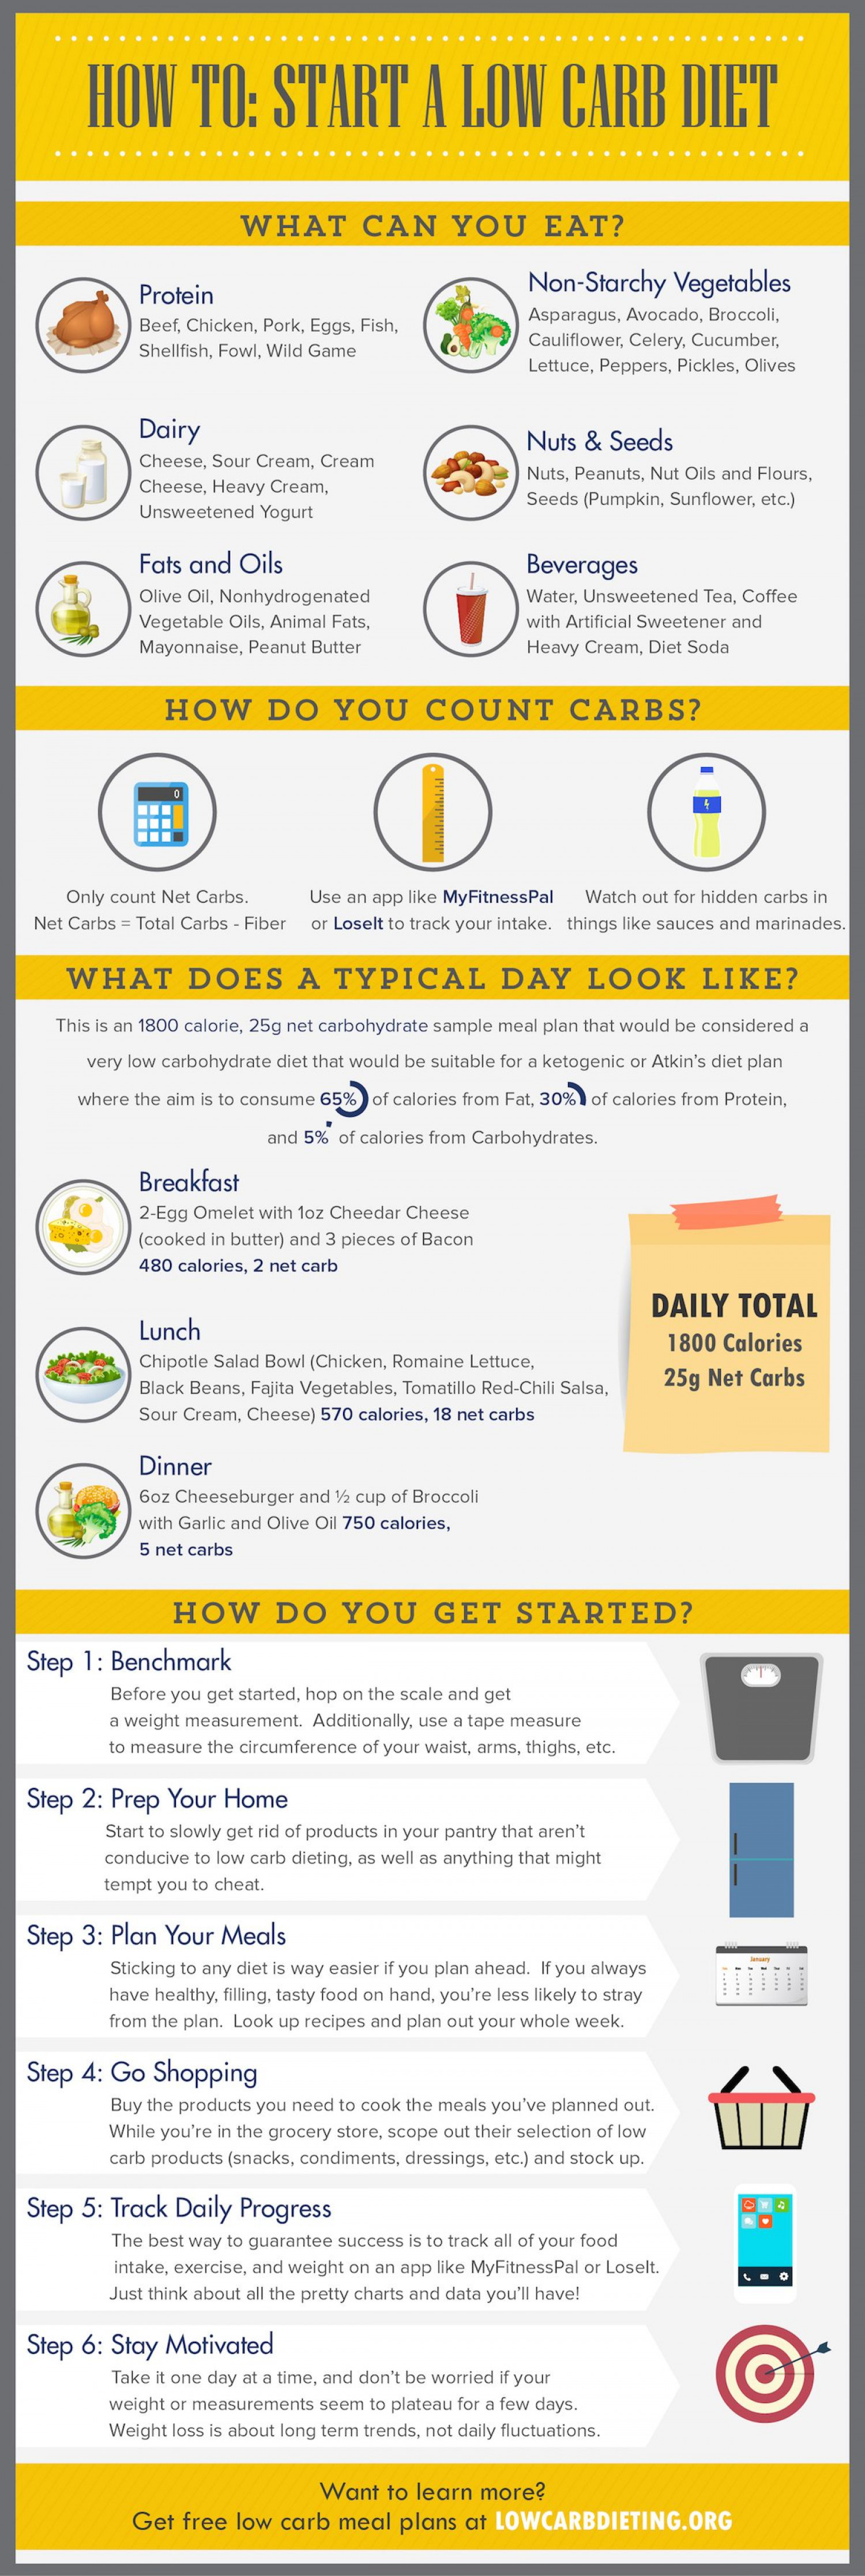 How To Start a Low Carb Diet Infographic